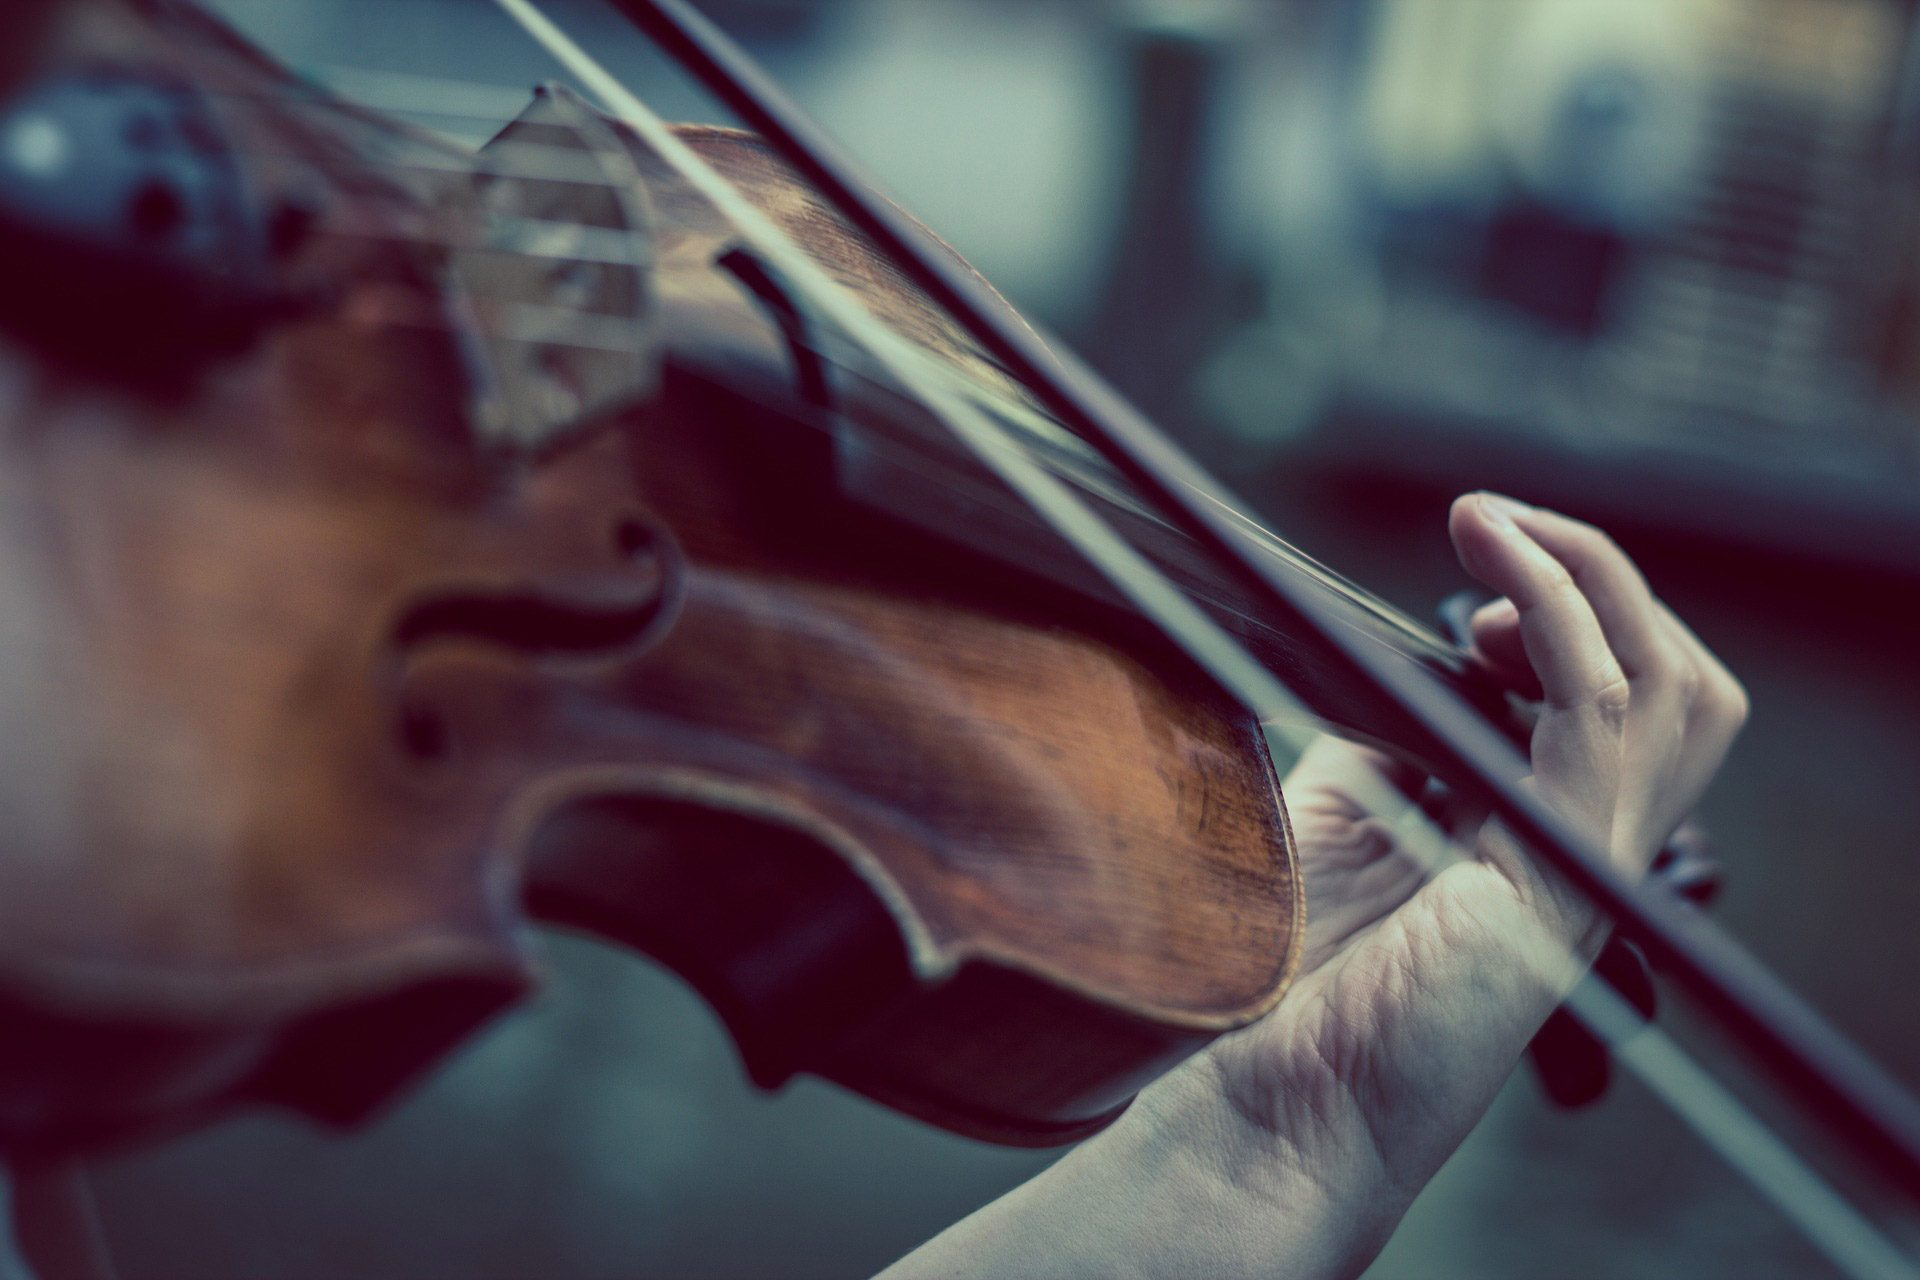 20180921_swam_header-violin-1920x1280